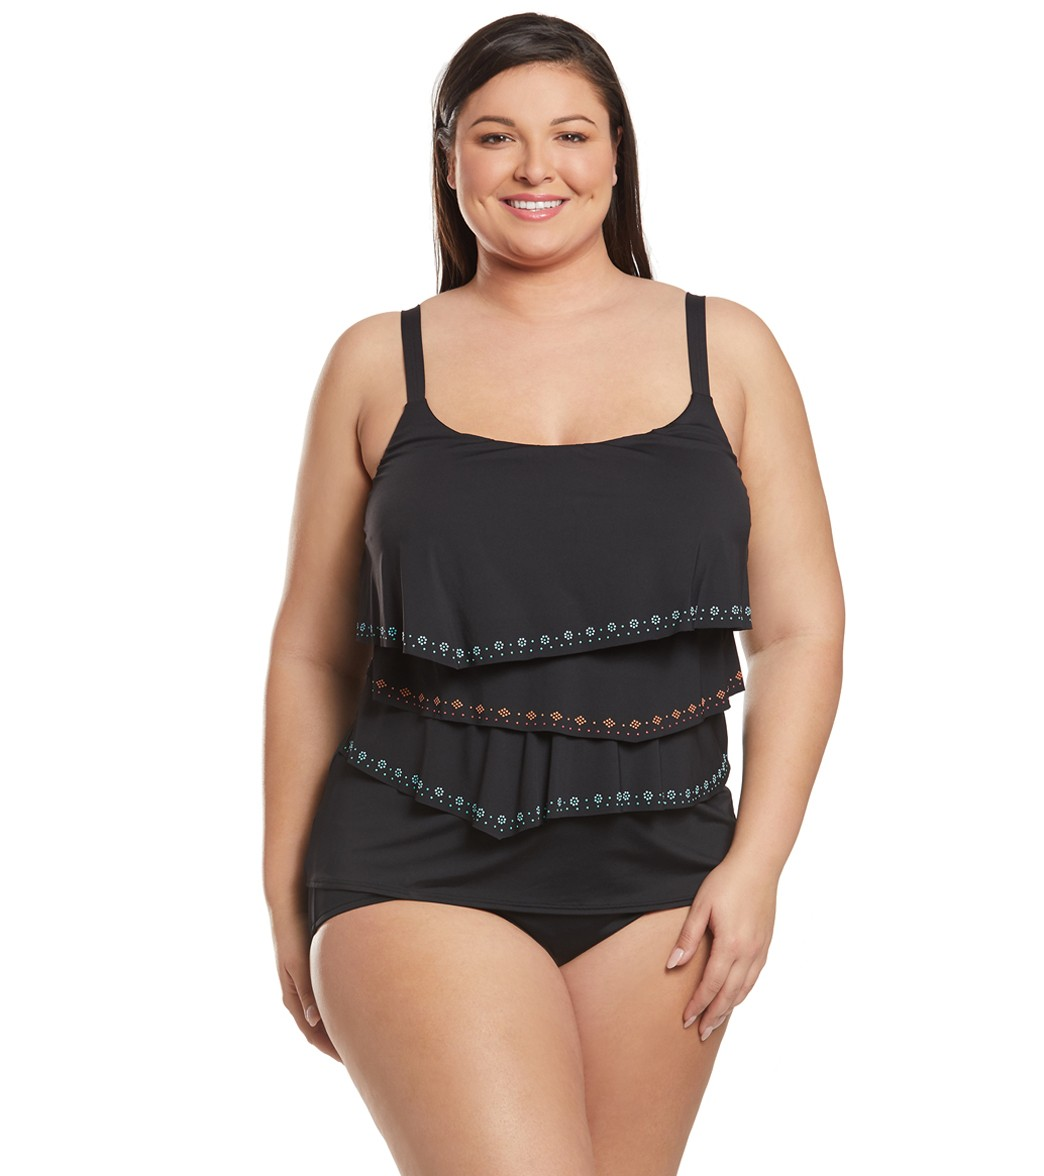 59feee3ab1c Coco Reef Plus Size Hot Spots Aura Tankini Top at SwimOutlet.com - Free  Shipping